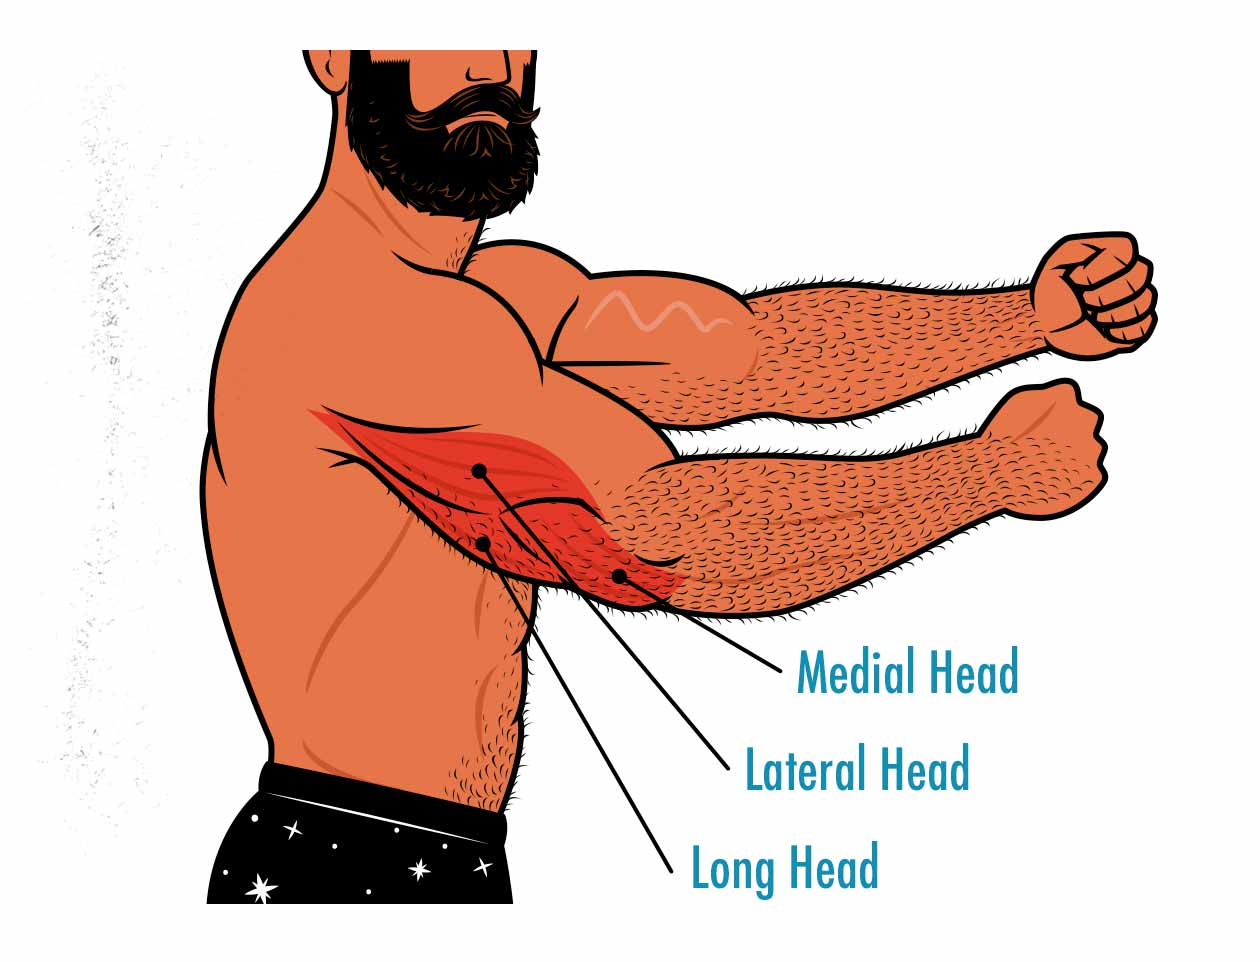 Illustration of the triceps muscle, showing the medial head, lateral head, and long head of the triceps.